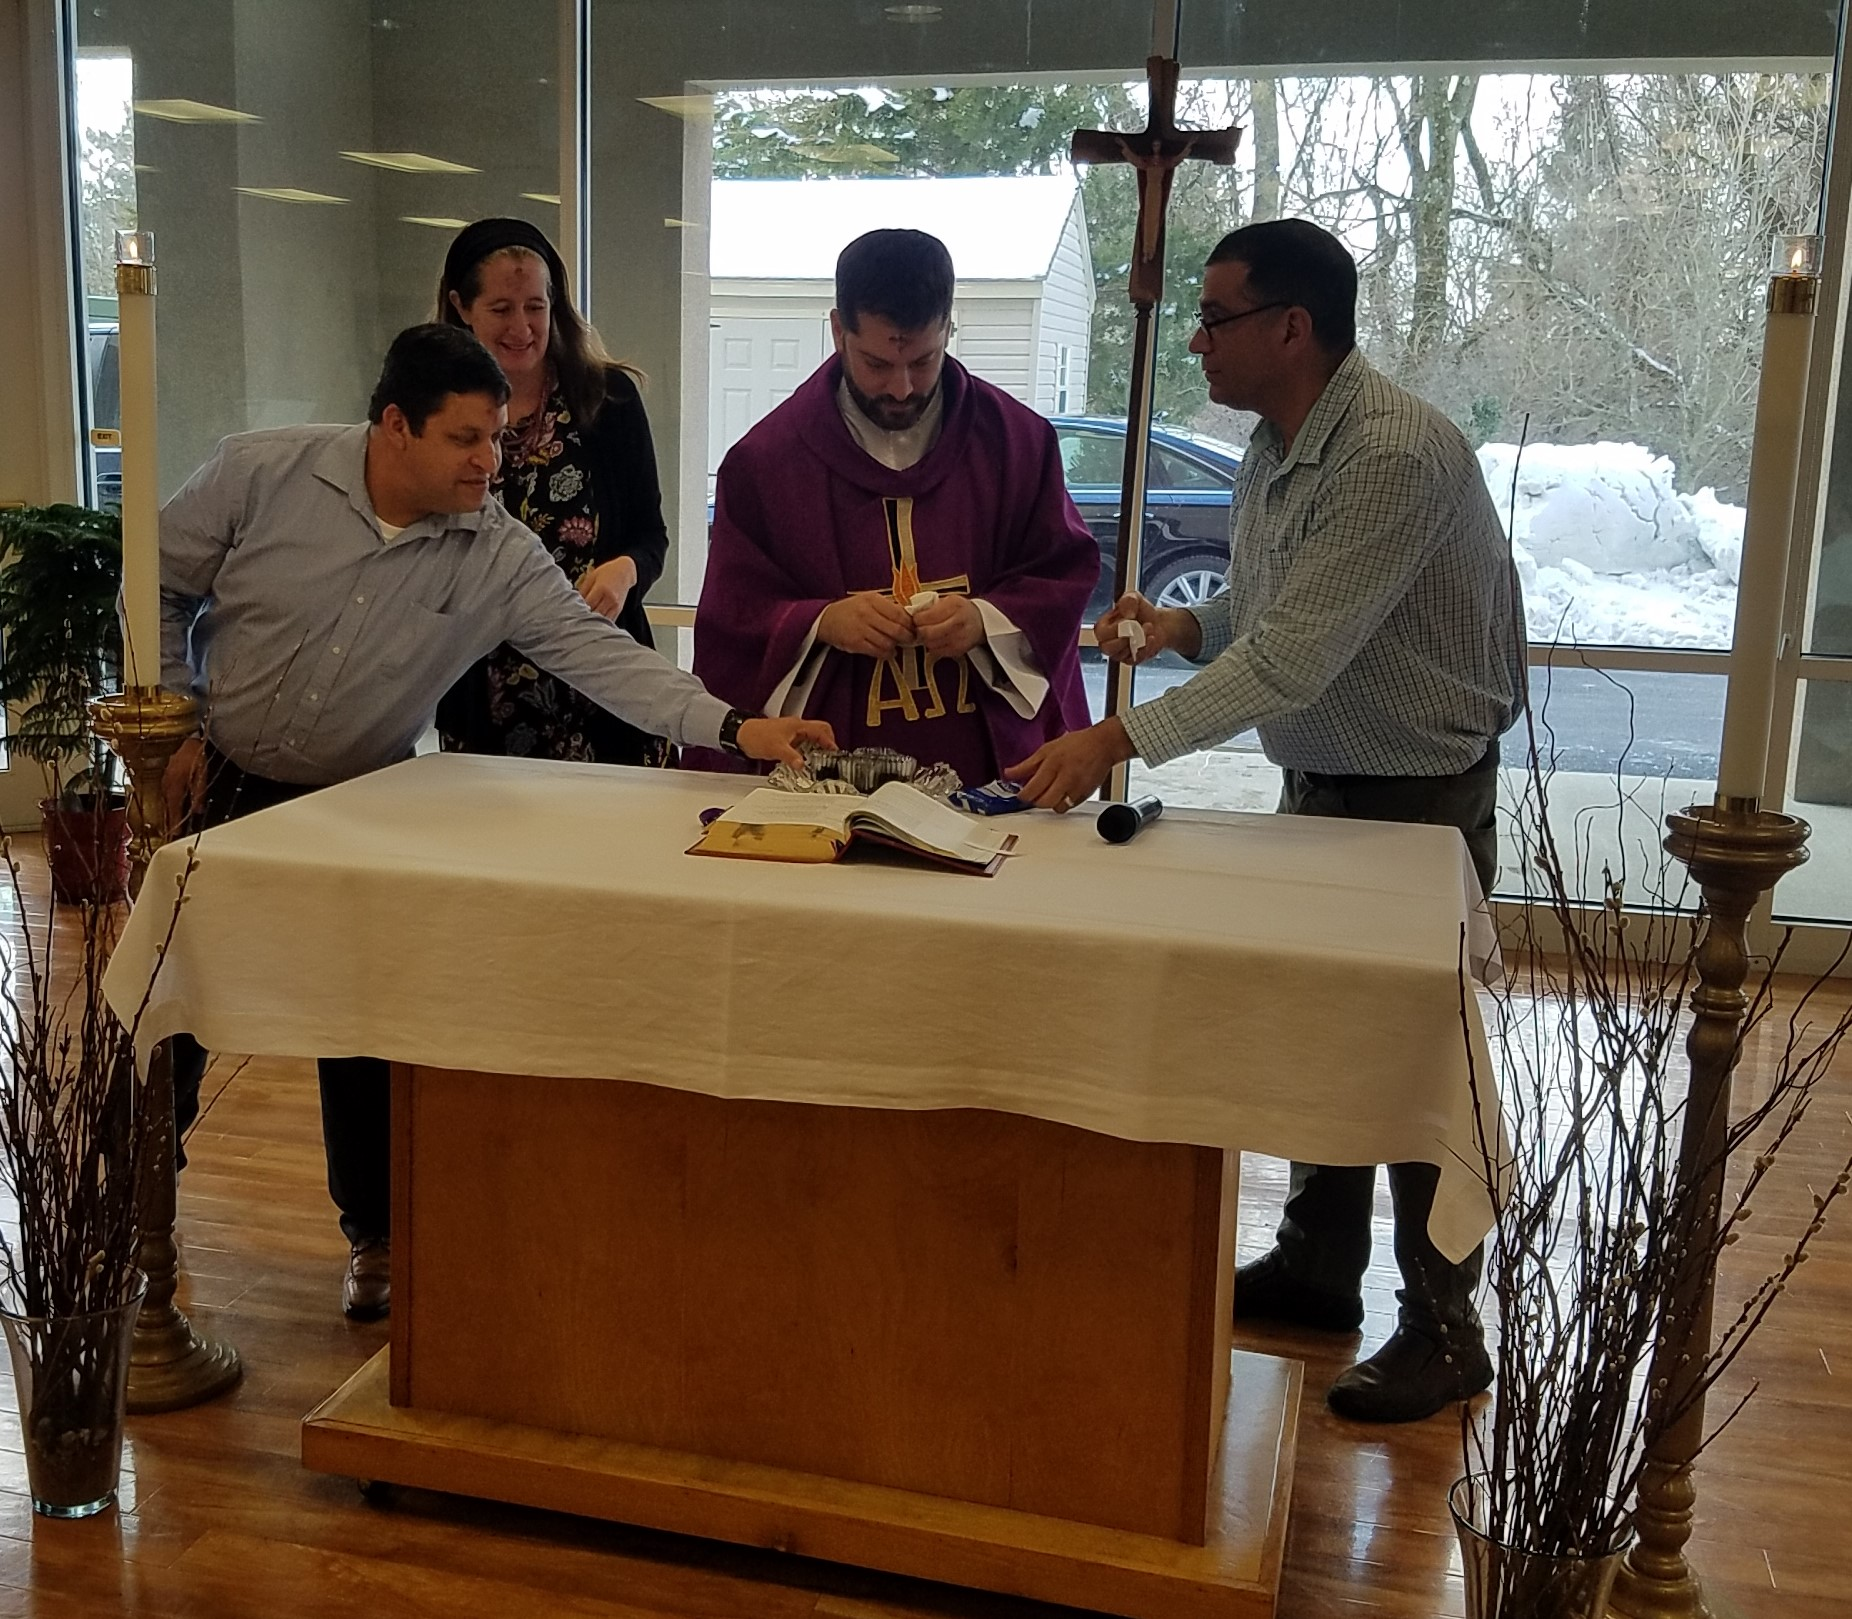 Wilson, Amy, Fr, Patricio, and Anthony bless and prepare the ashes at Ash Wednesday mass